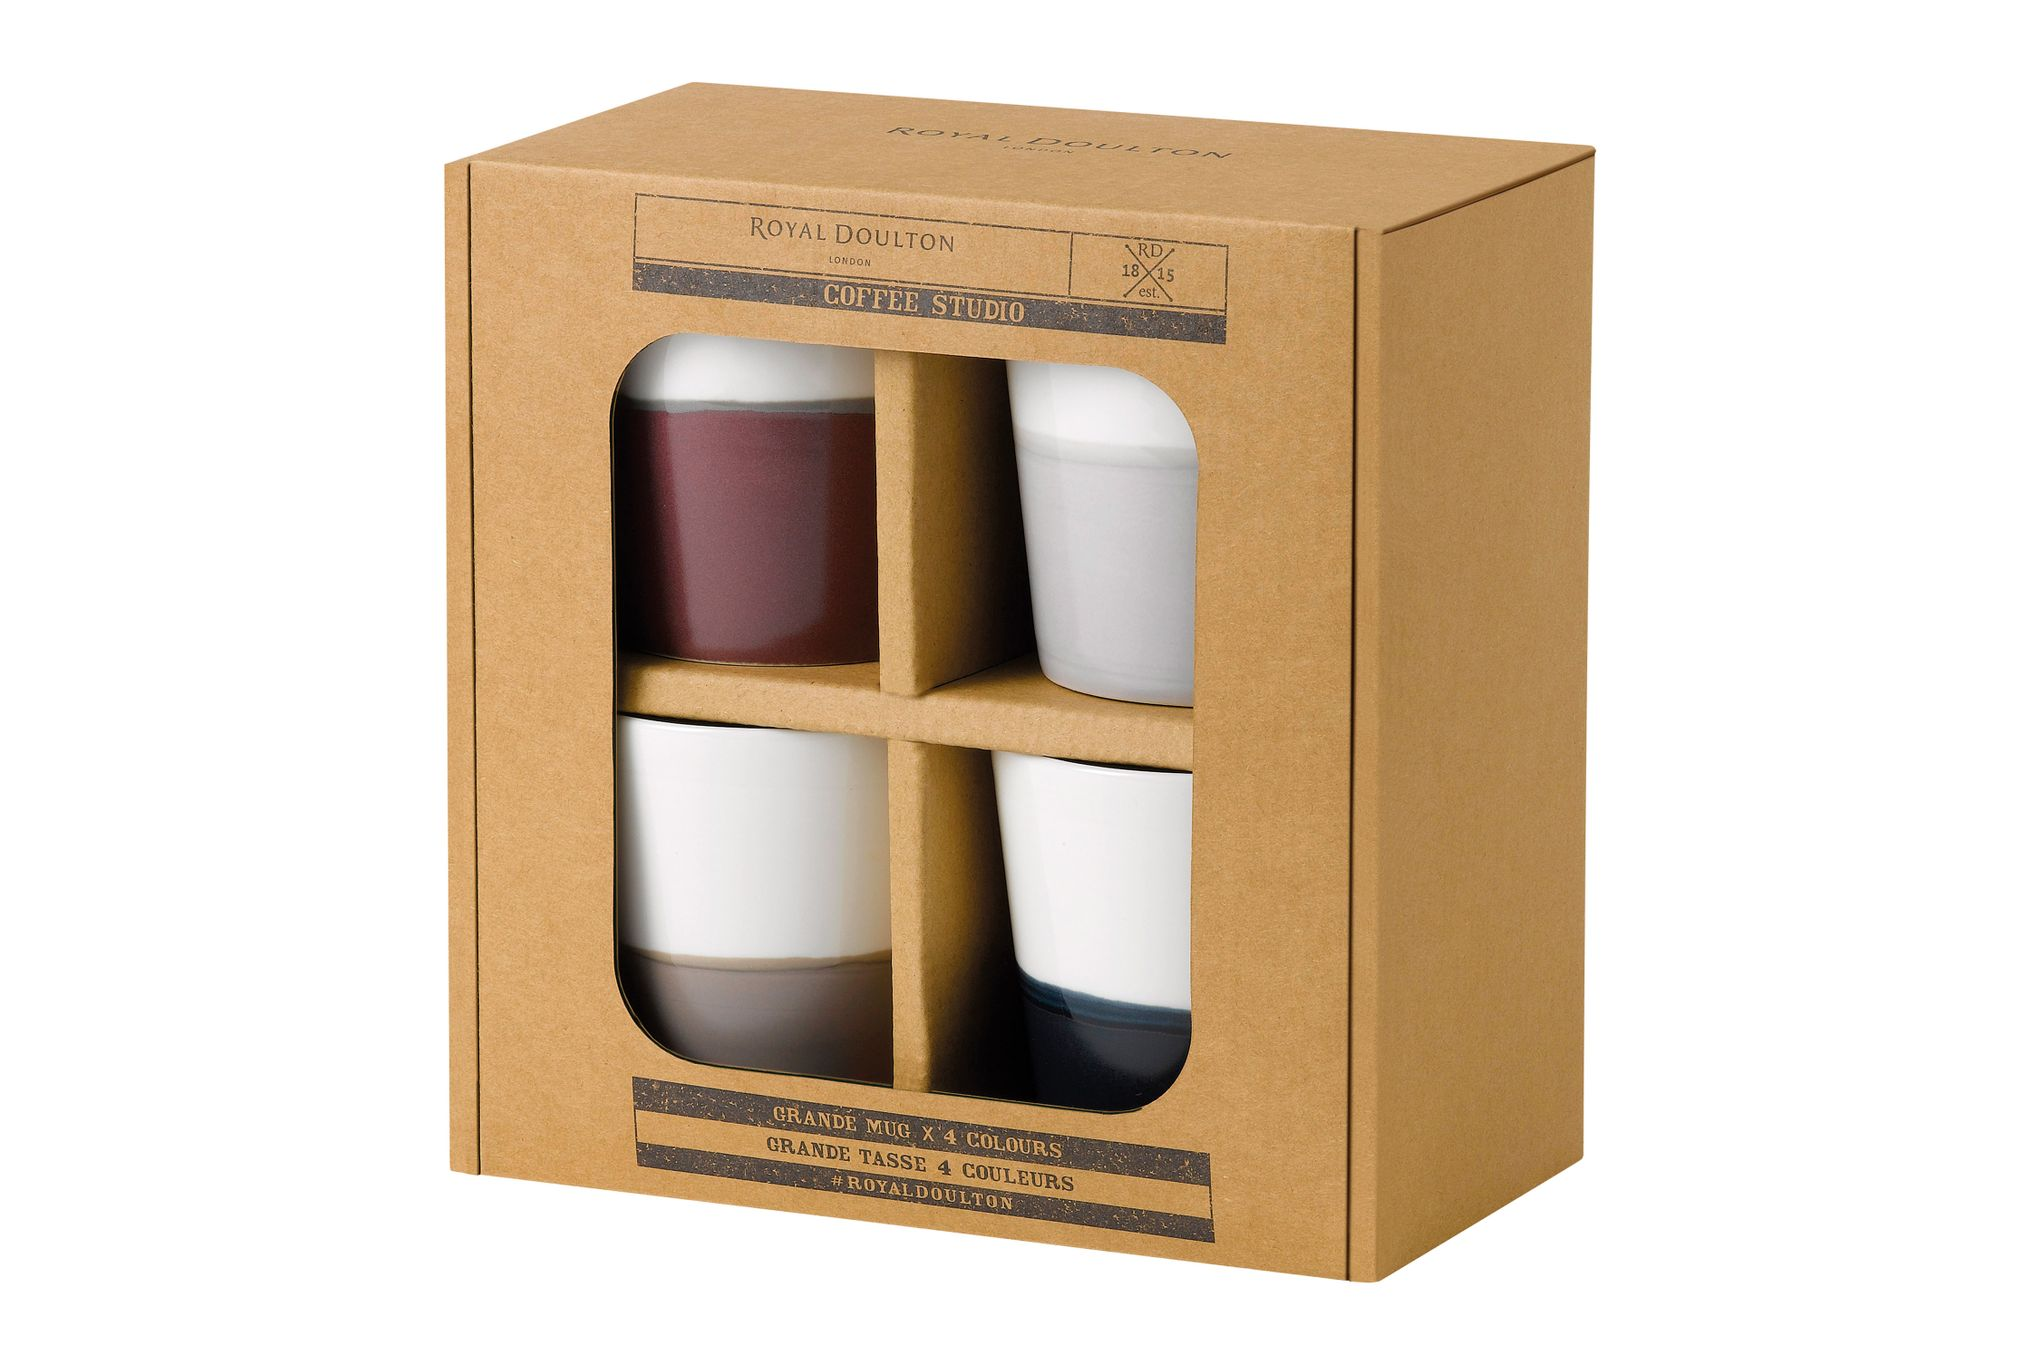 "Royal Doulton Coffee Studio Set of 4 Mugs 4 x 4 1/4"", 560ml thumb 2"